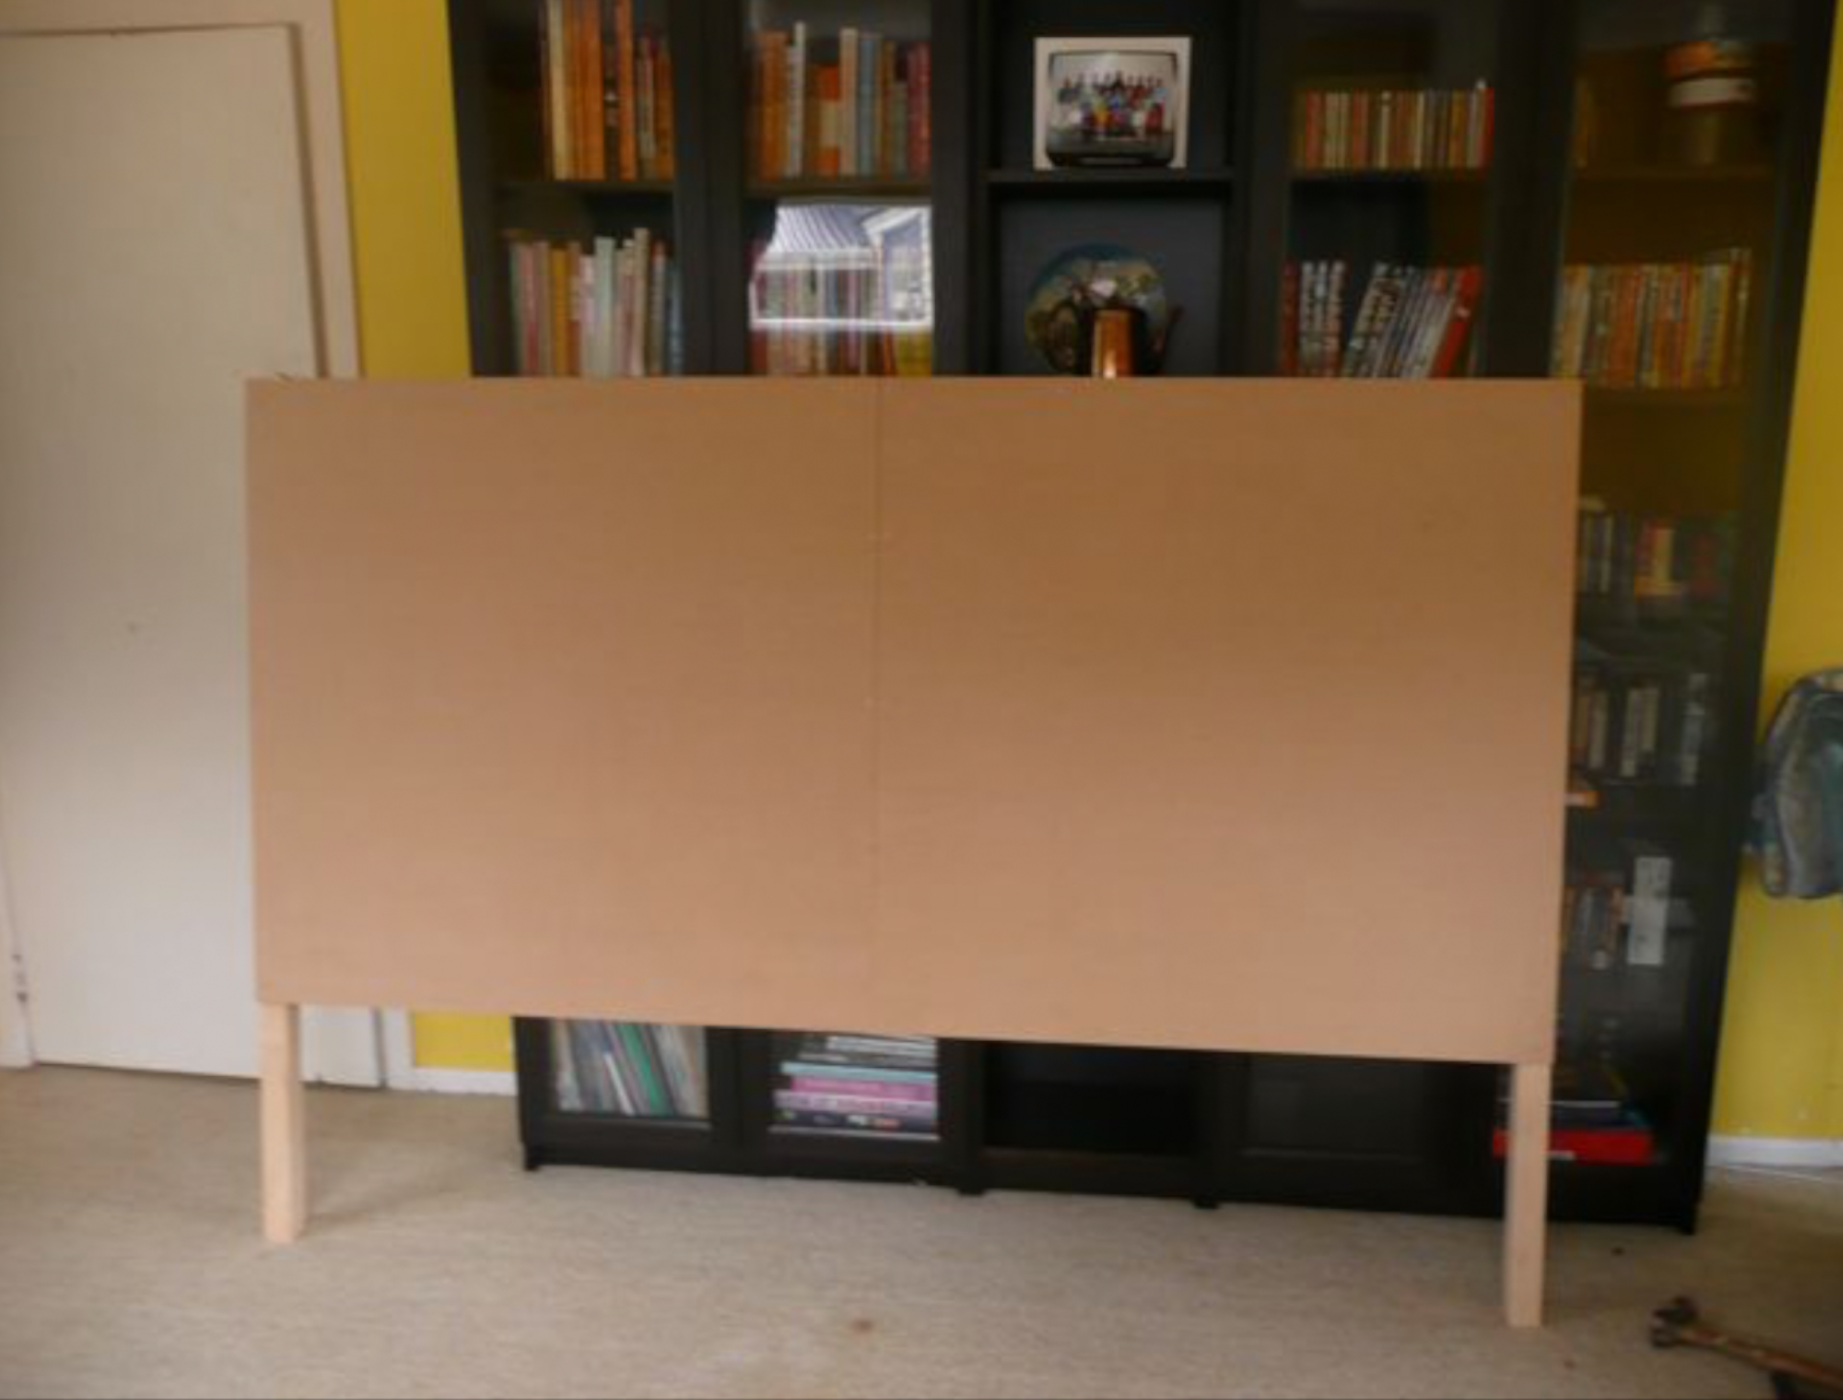 This project you will need plywood or MDF headboard. I made my headboard to fit a queen size. Here are the correct sizes, if you are wanting to make a king, twin or full.  King size: 78'' W x 56''H with legs, Queen size: 60'' W x 56'' H, Full size: 54'' W x 56'' H, Twin size: 39'' W x 56'' H